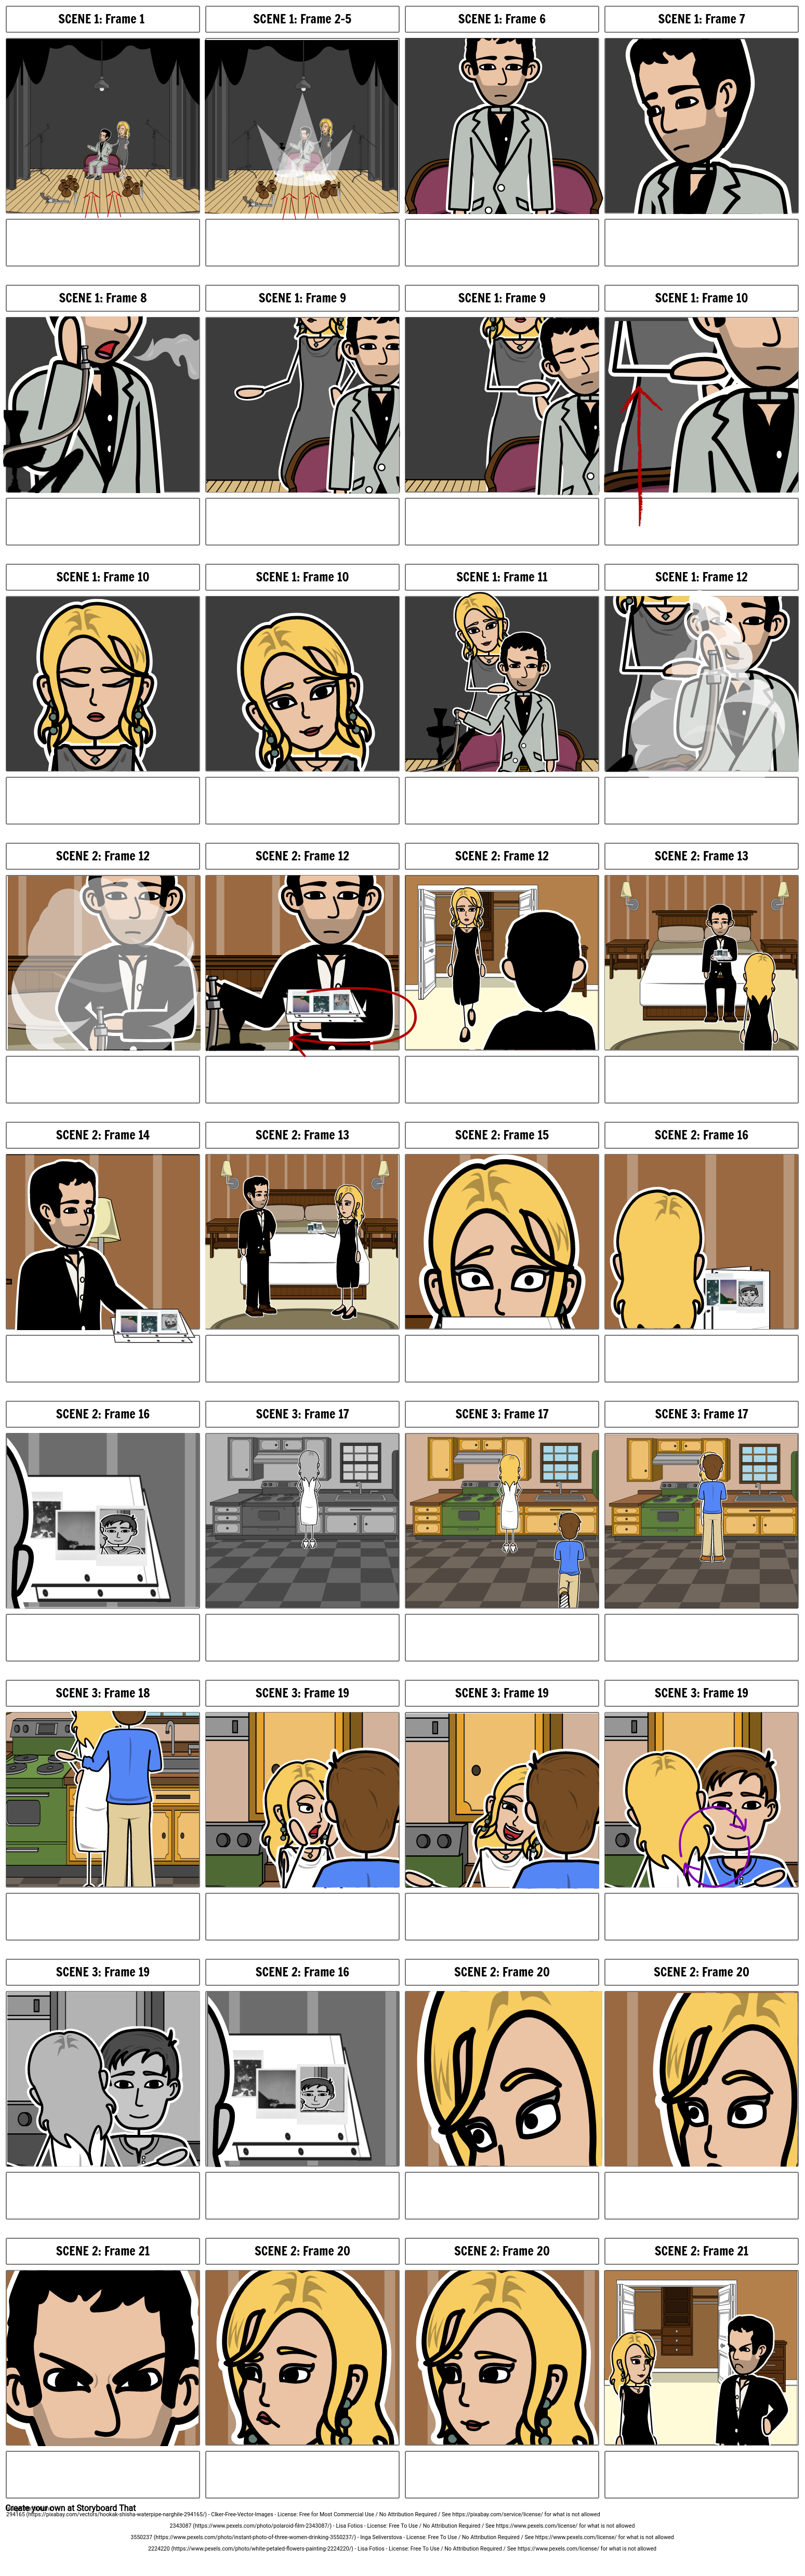 On A Trip Music Video Storyboard